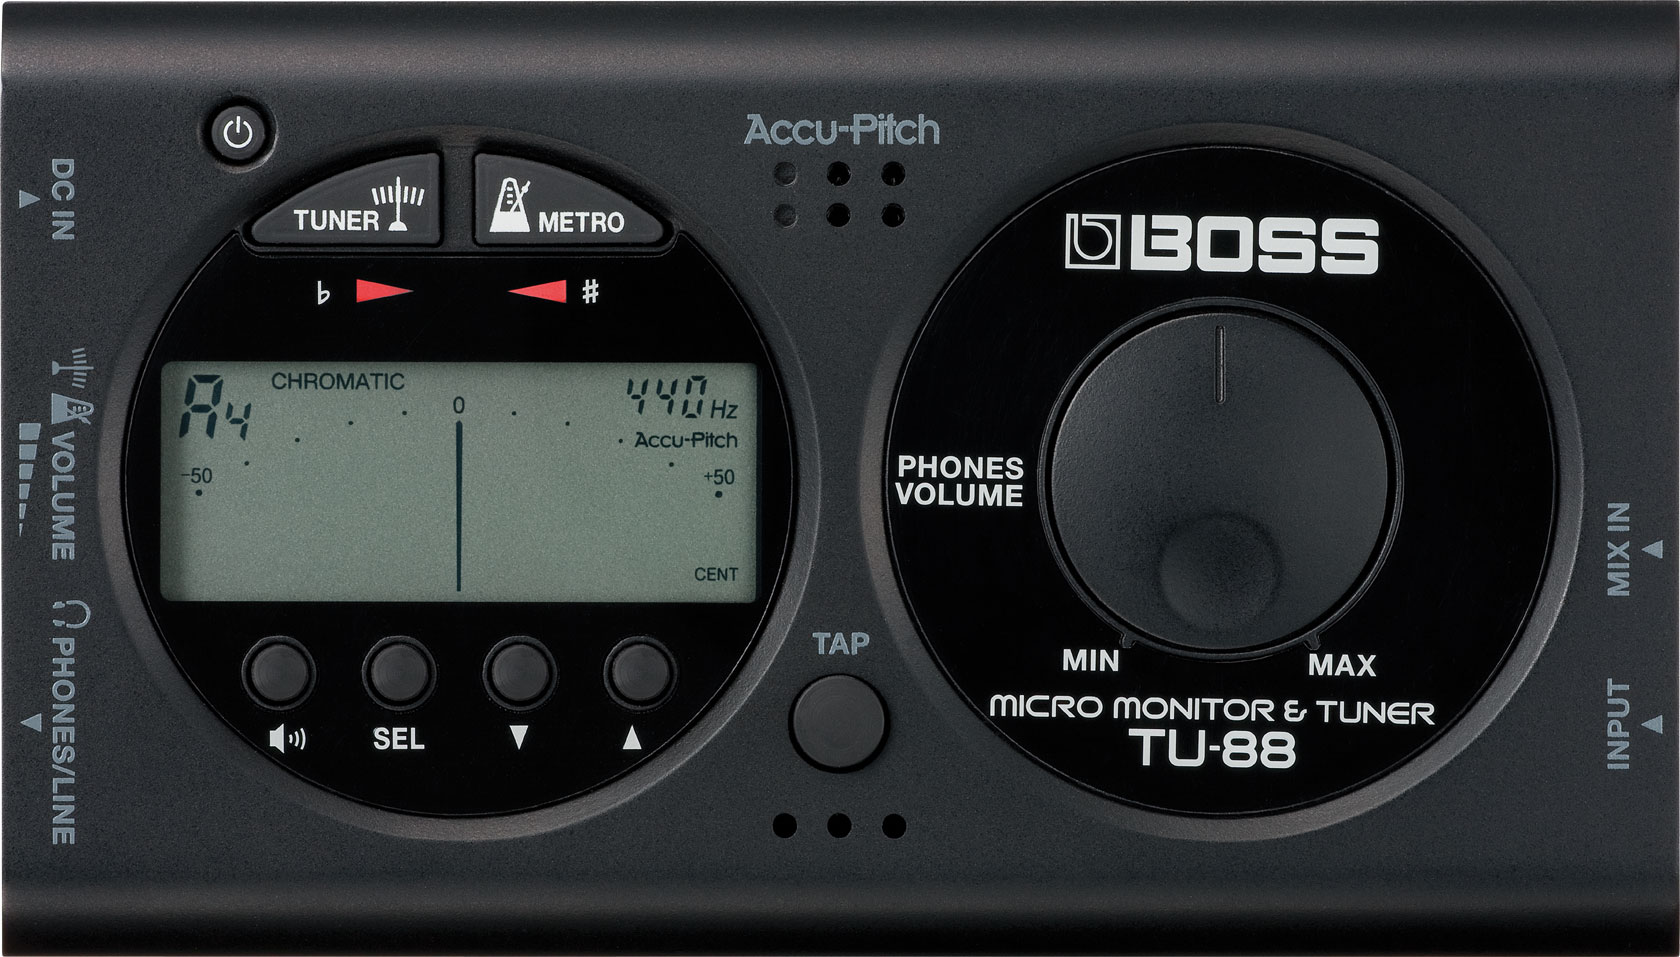 BOSS TU-88 Tuner And Micro Monitor*